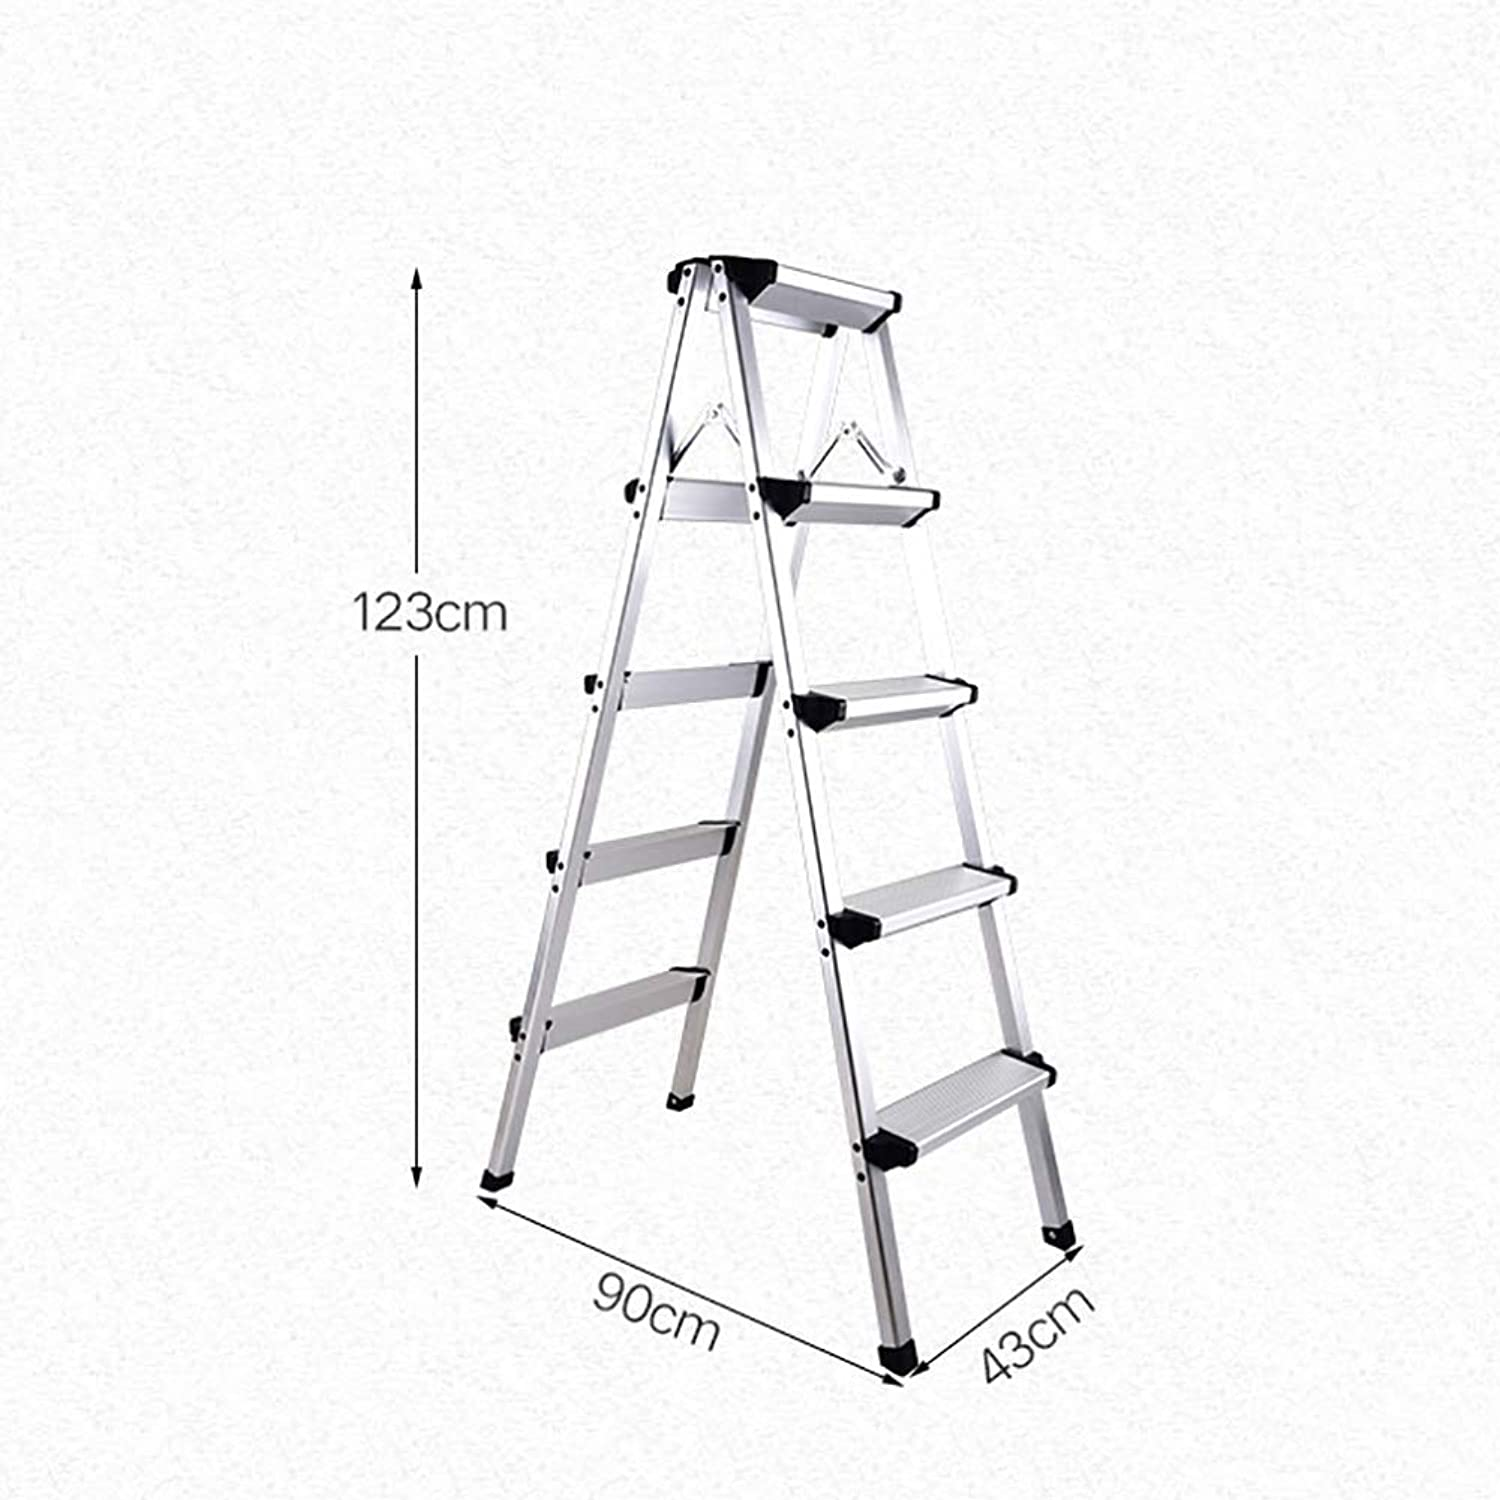 ZLL Household Step Stool, Photography Folding Step Stool, Step Stools Folding Step Stool for Adult Seniors, Silver Stepladders for Kitchen Office, 330 Capacity, Stable Full Size Step Stool with Wide